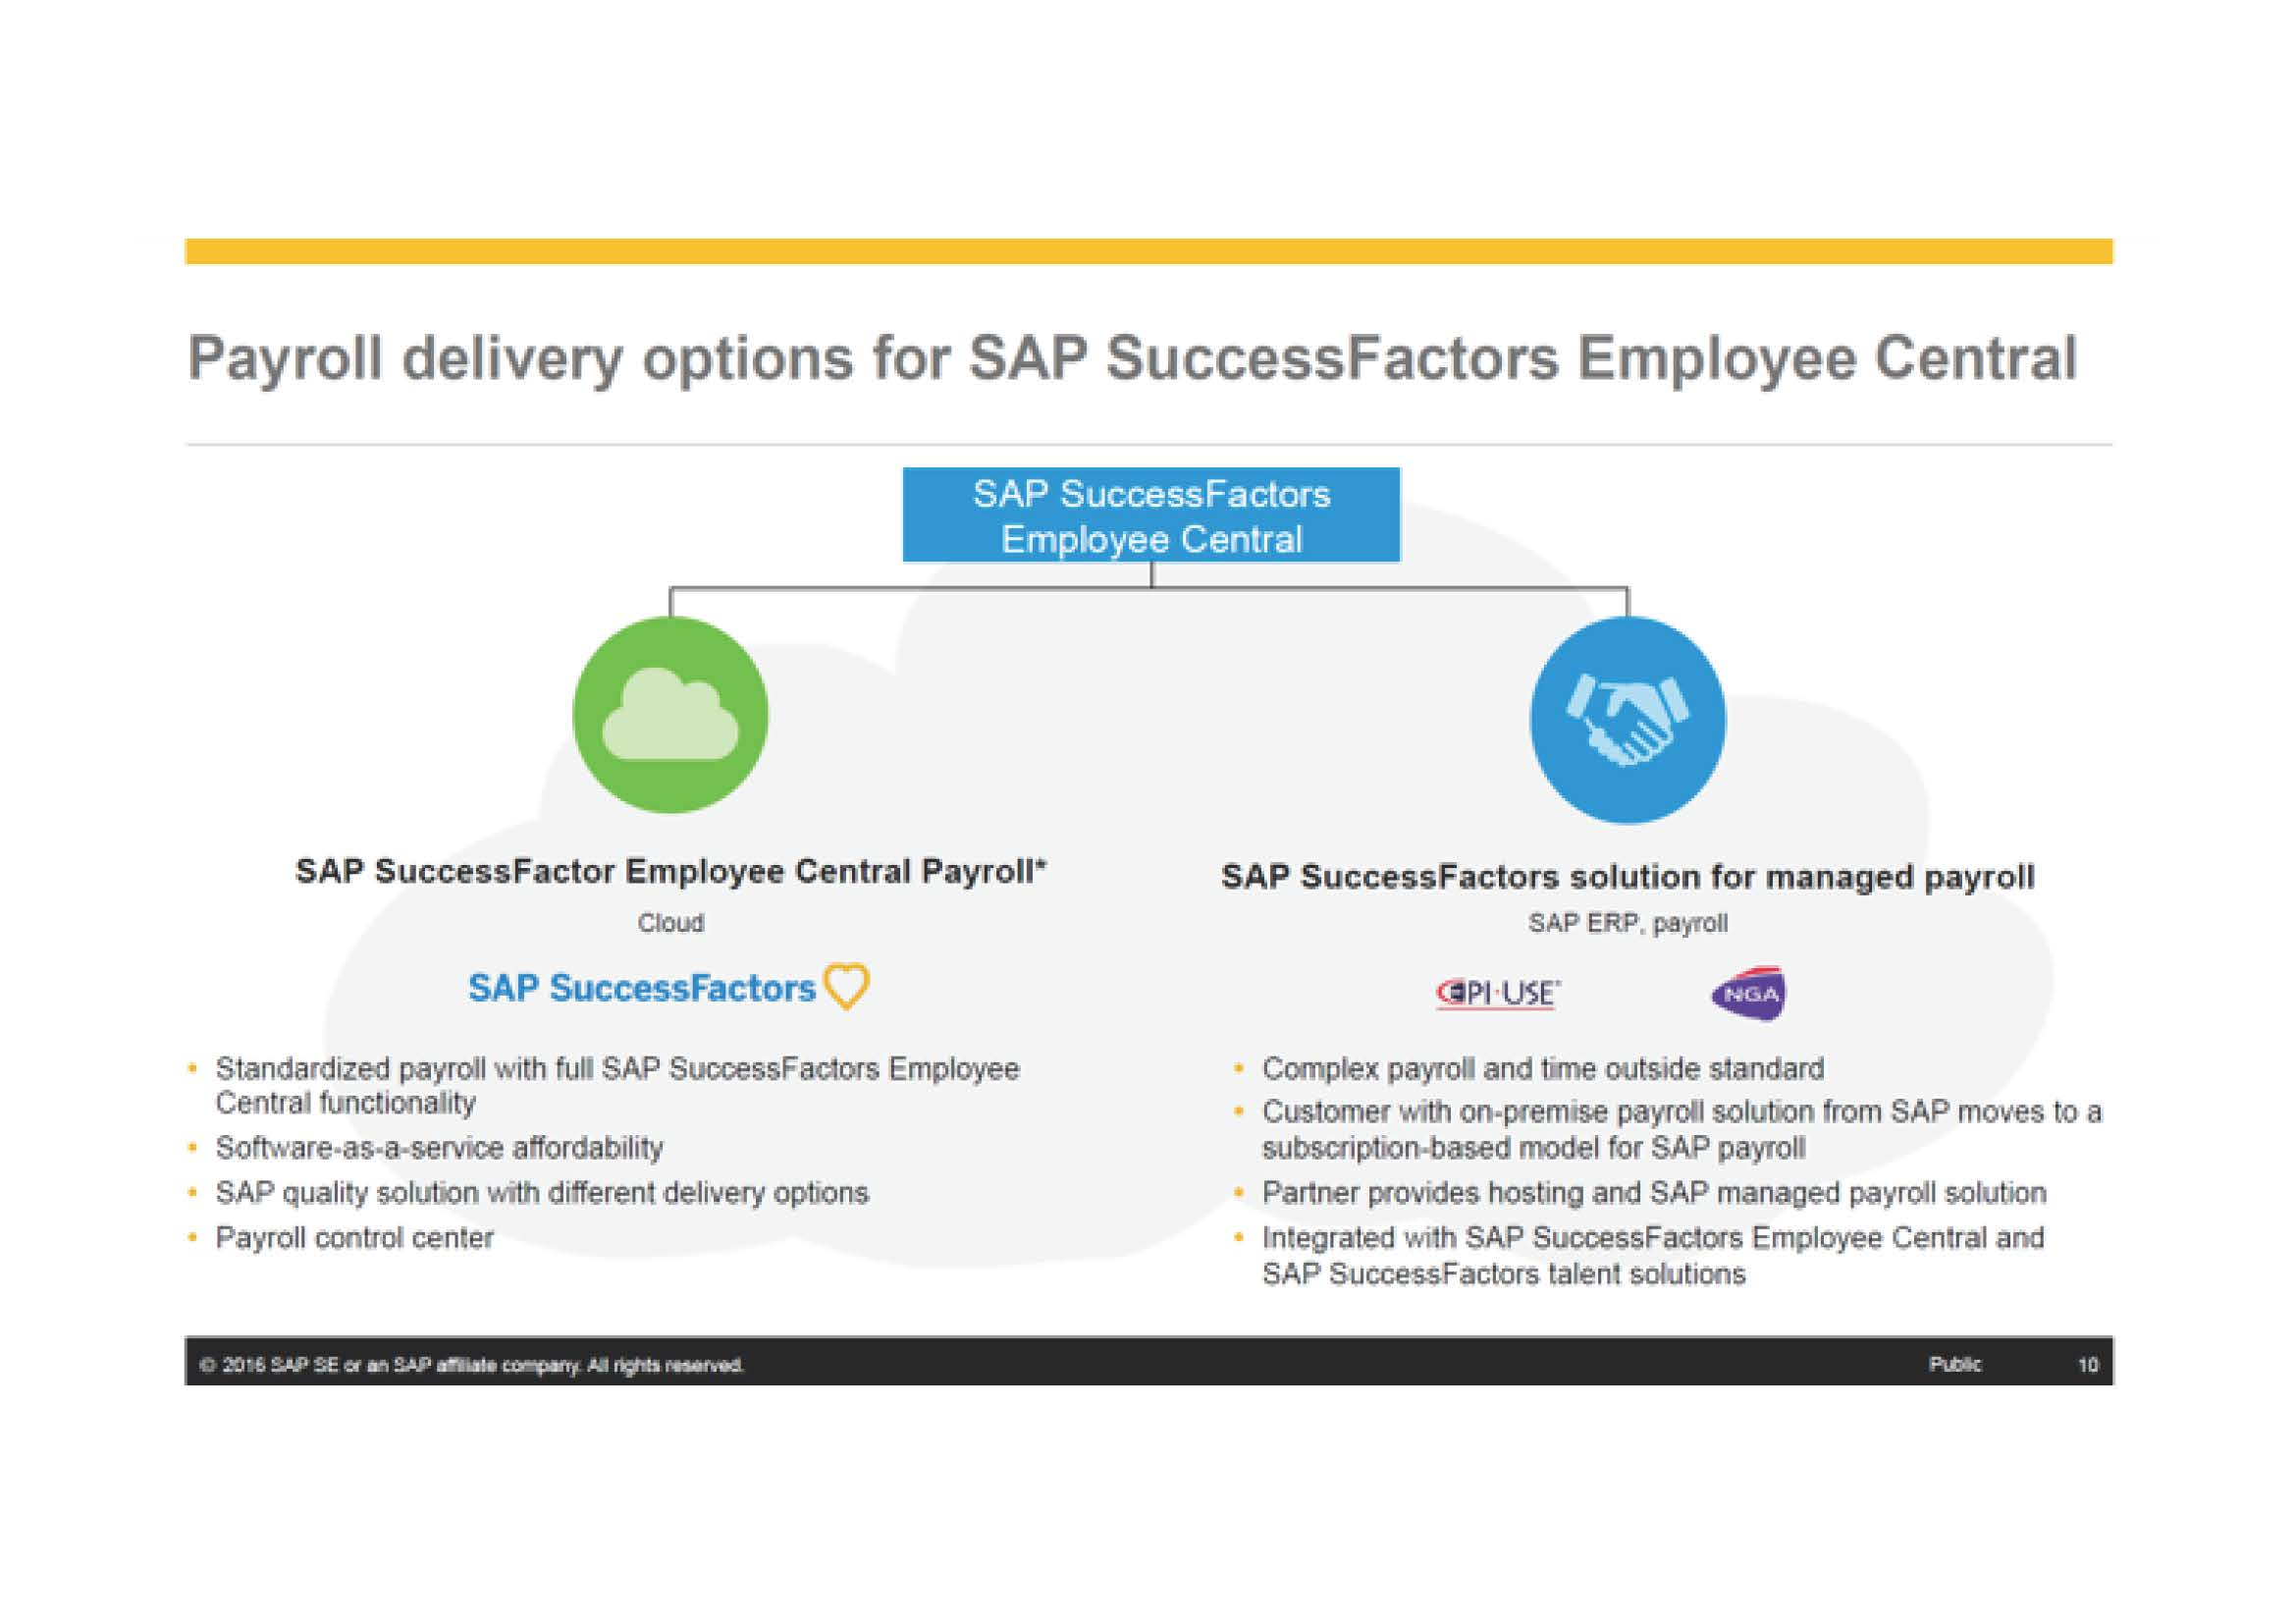 SAP SuccessFactors Managed Payroll offering was created to address the needs of customers that made a large investment in their SAP Payroll